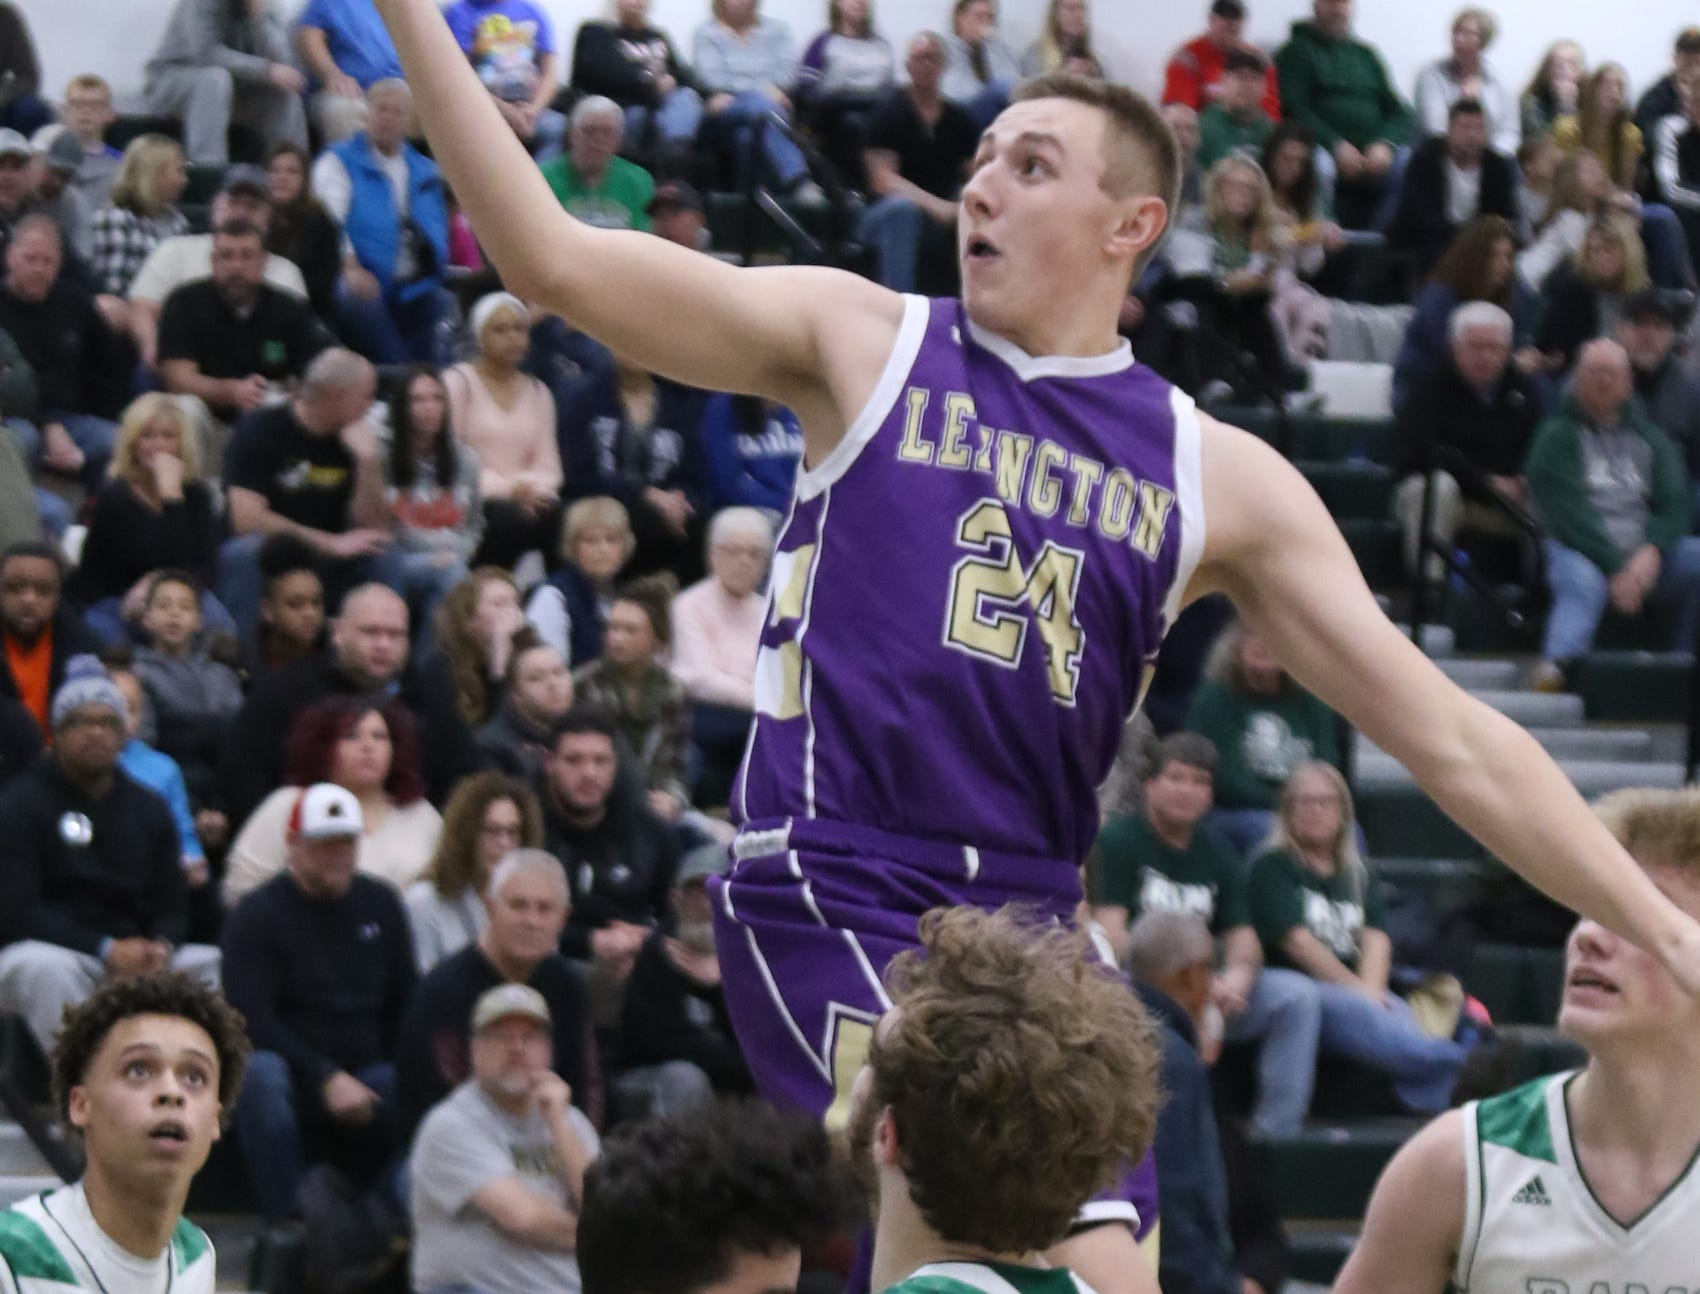 Lexington's Nick Stehle attempts a jump shot while playing at Madison on Friday.